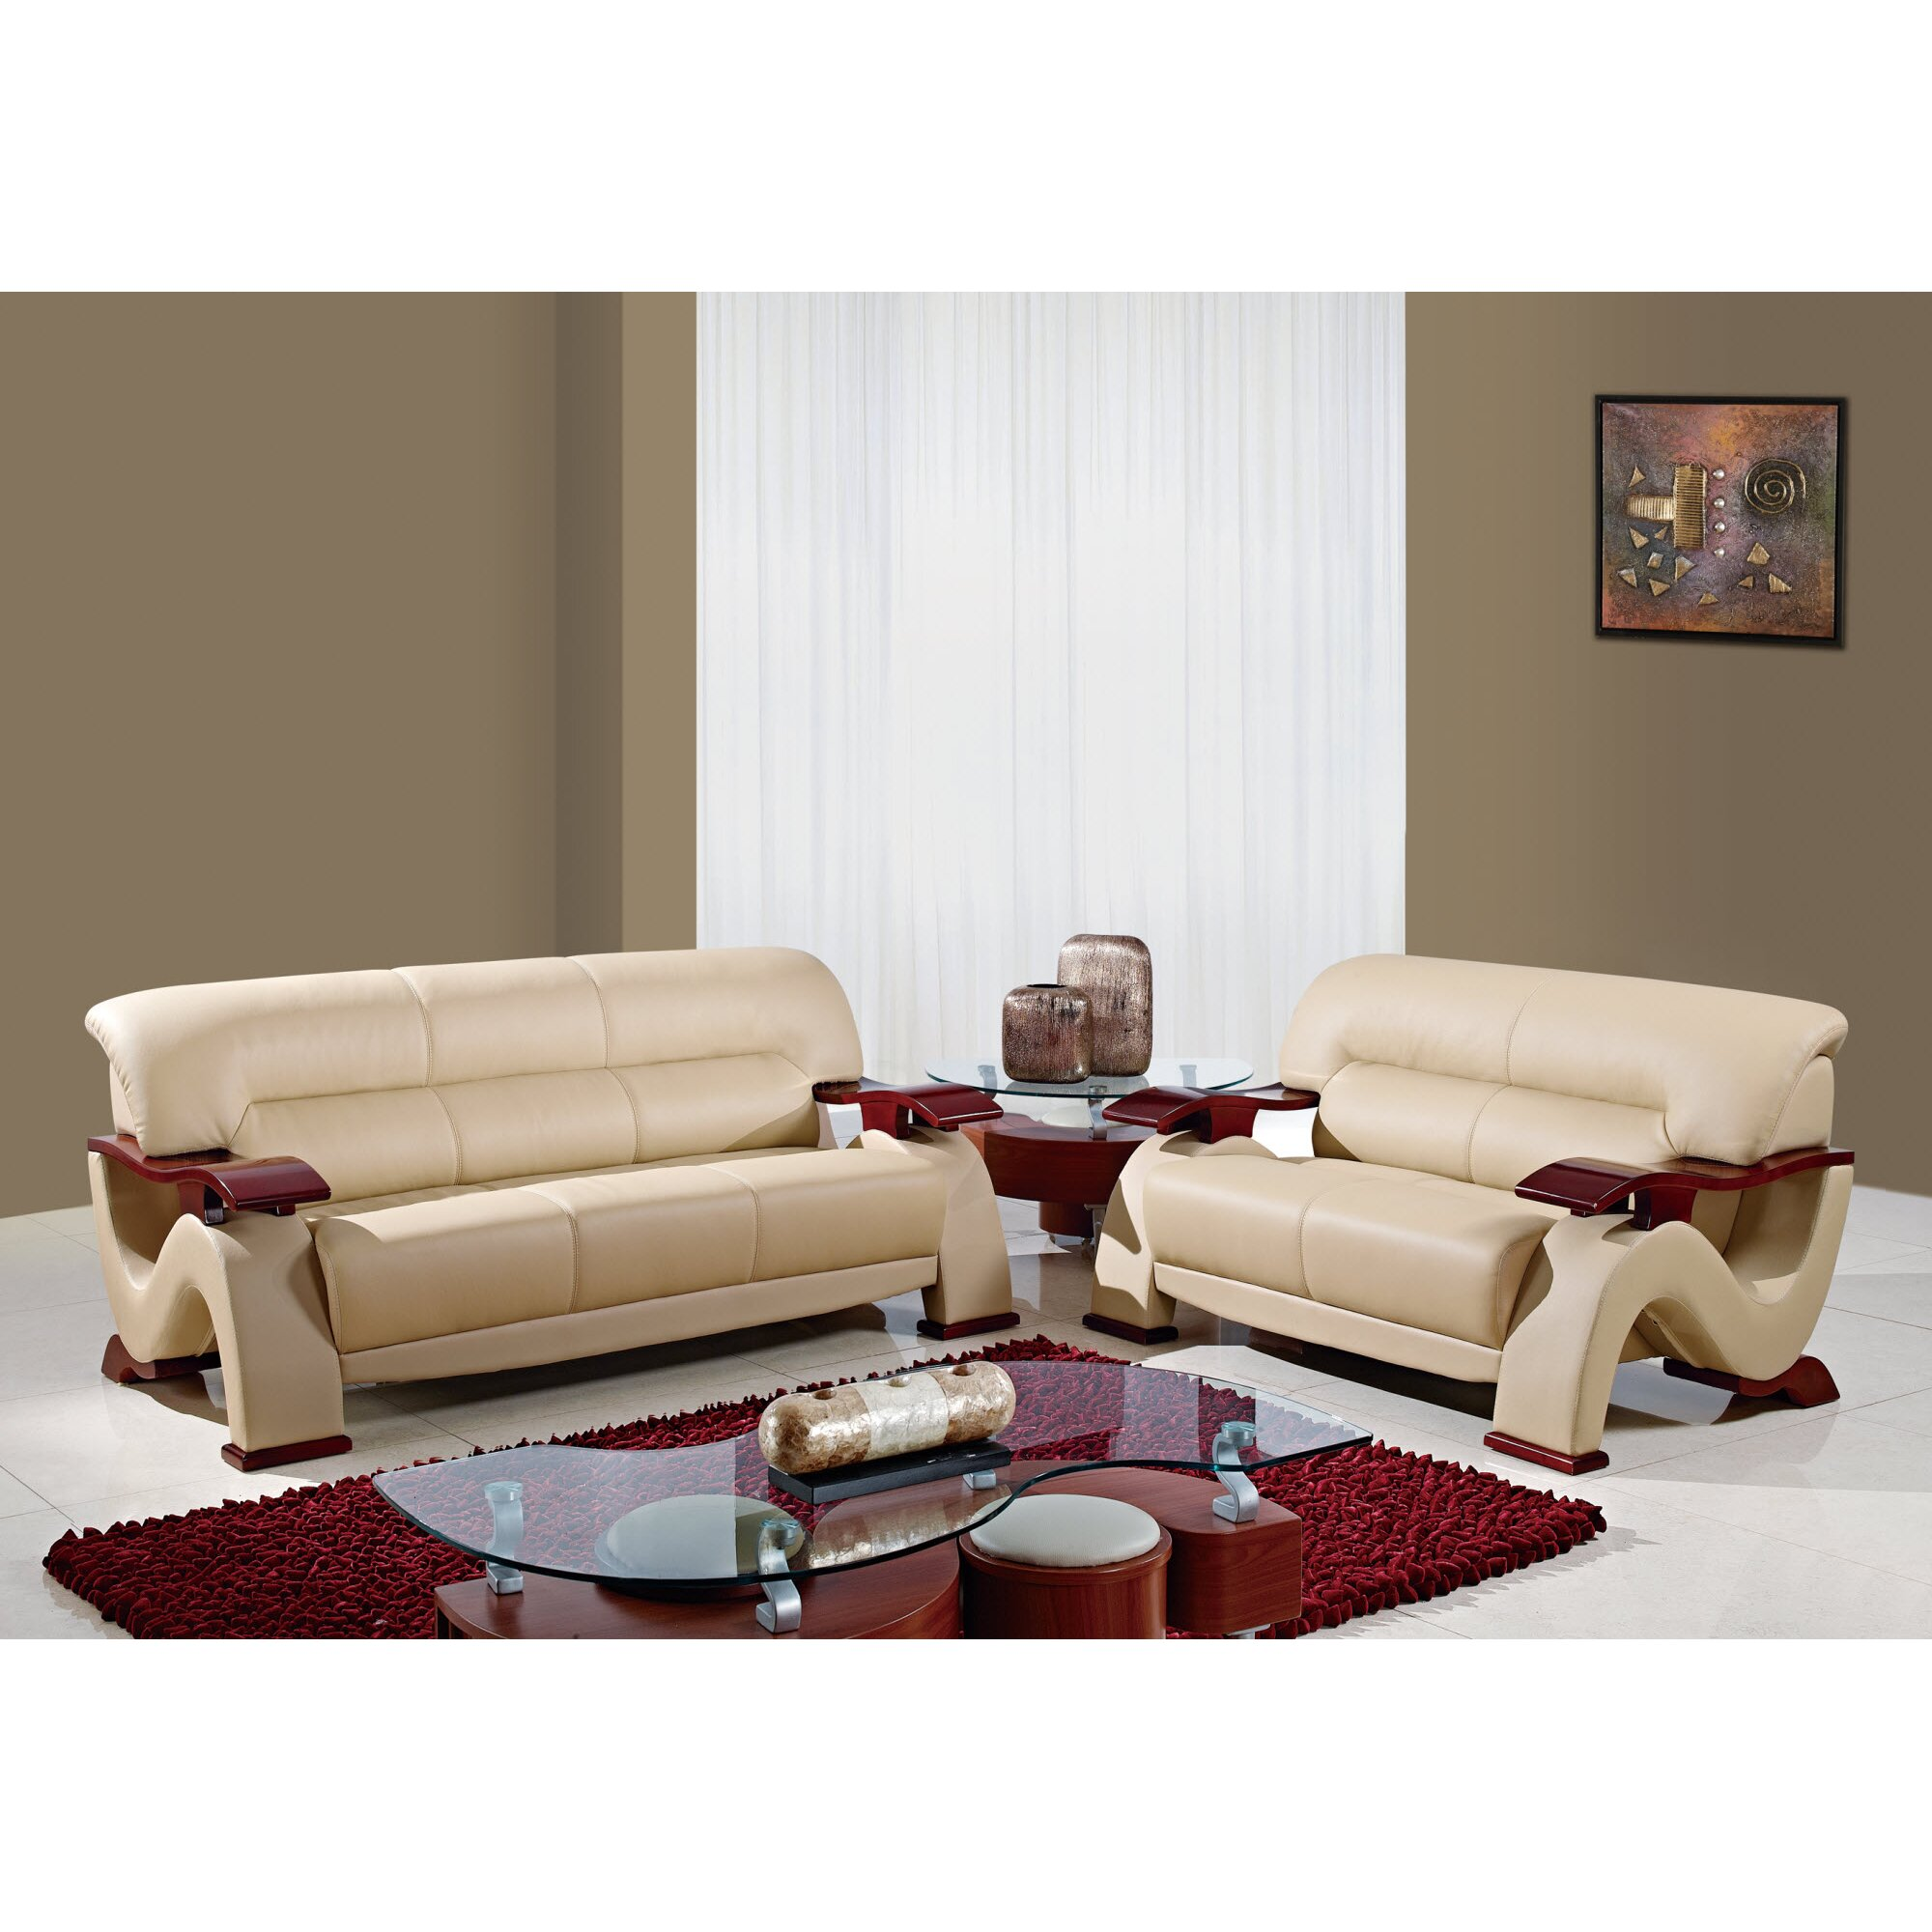 Search For Furniture